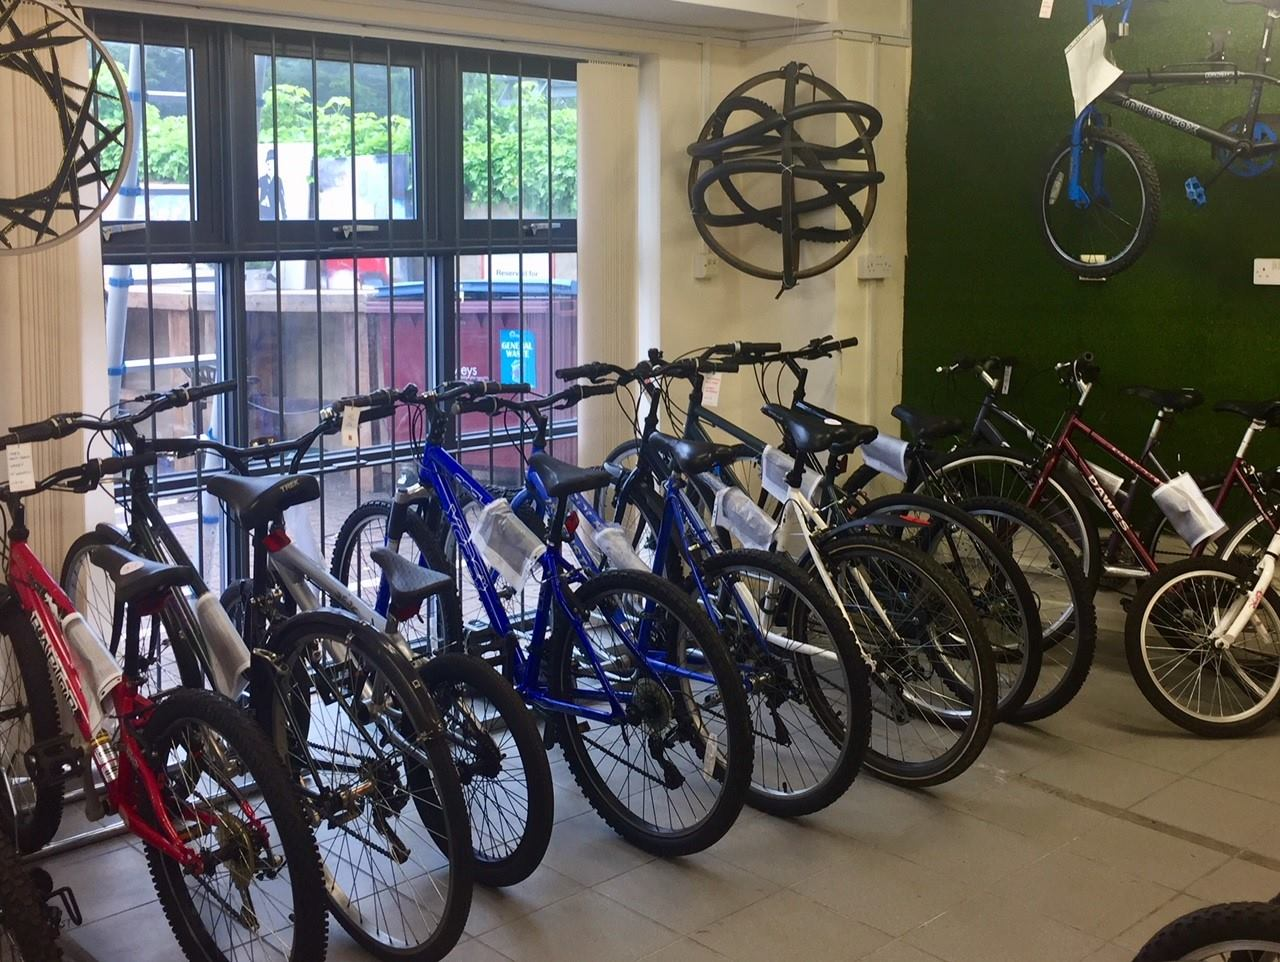 A selection of bikes for sale following the refurbishment and repair carried out by people working at Recycle Your Cycle workshops. Photo credit -  Recycle Your Cycle